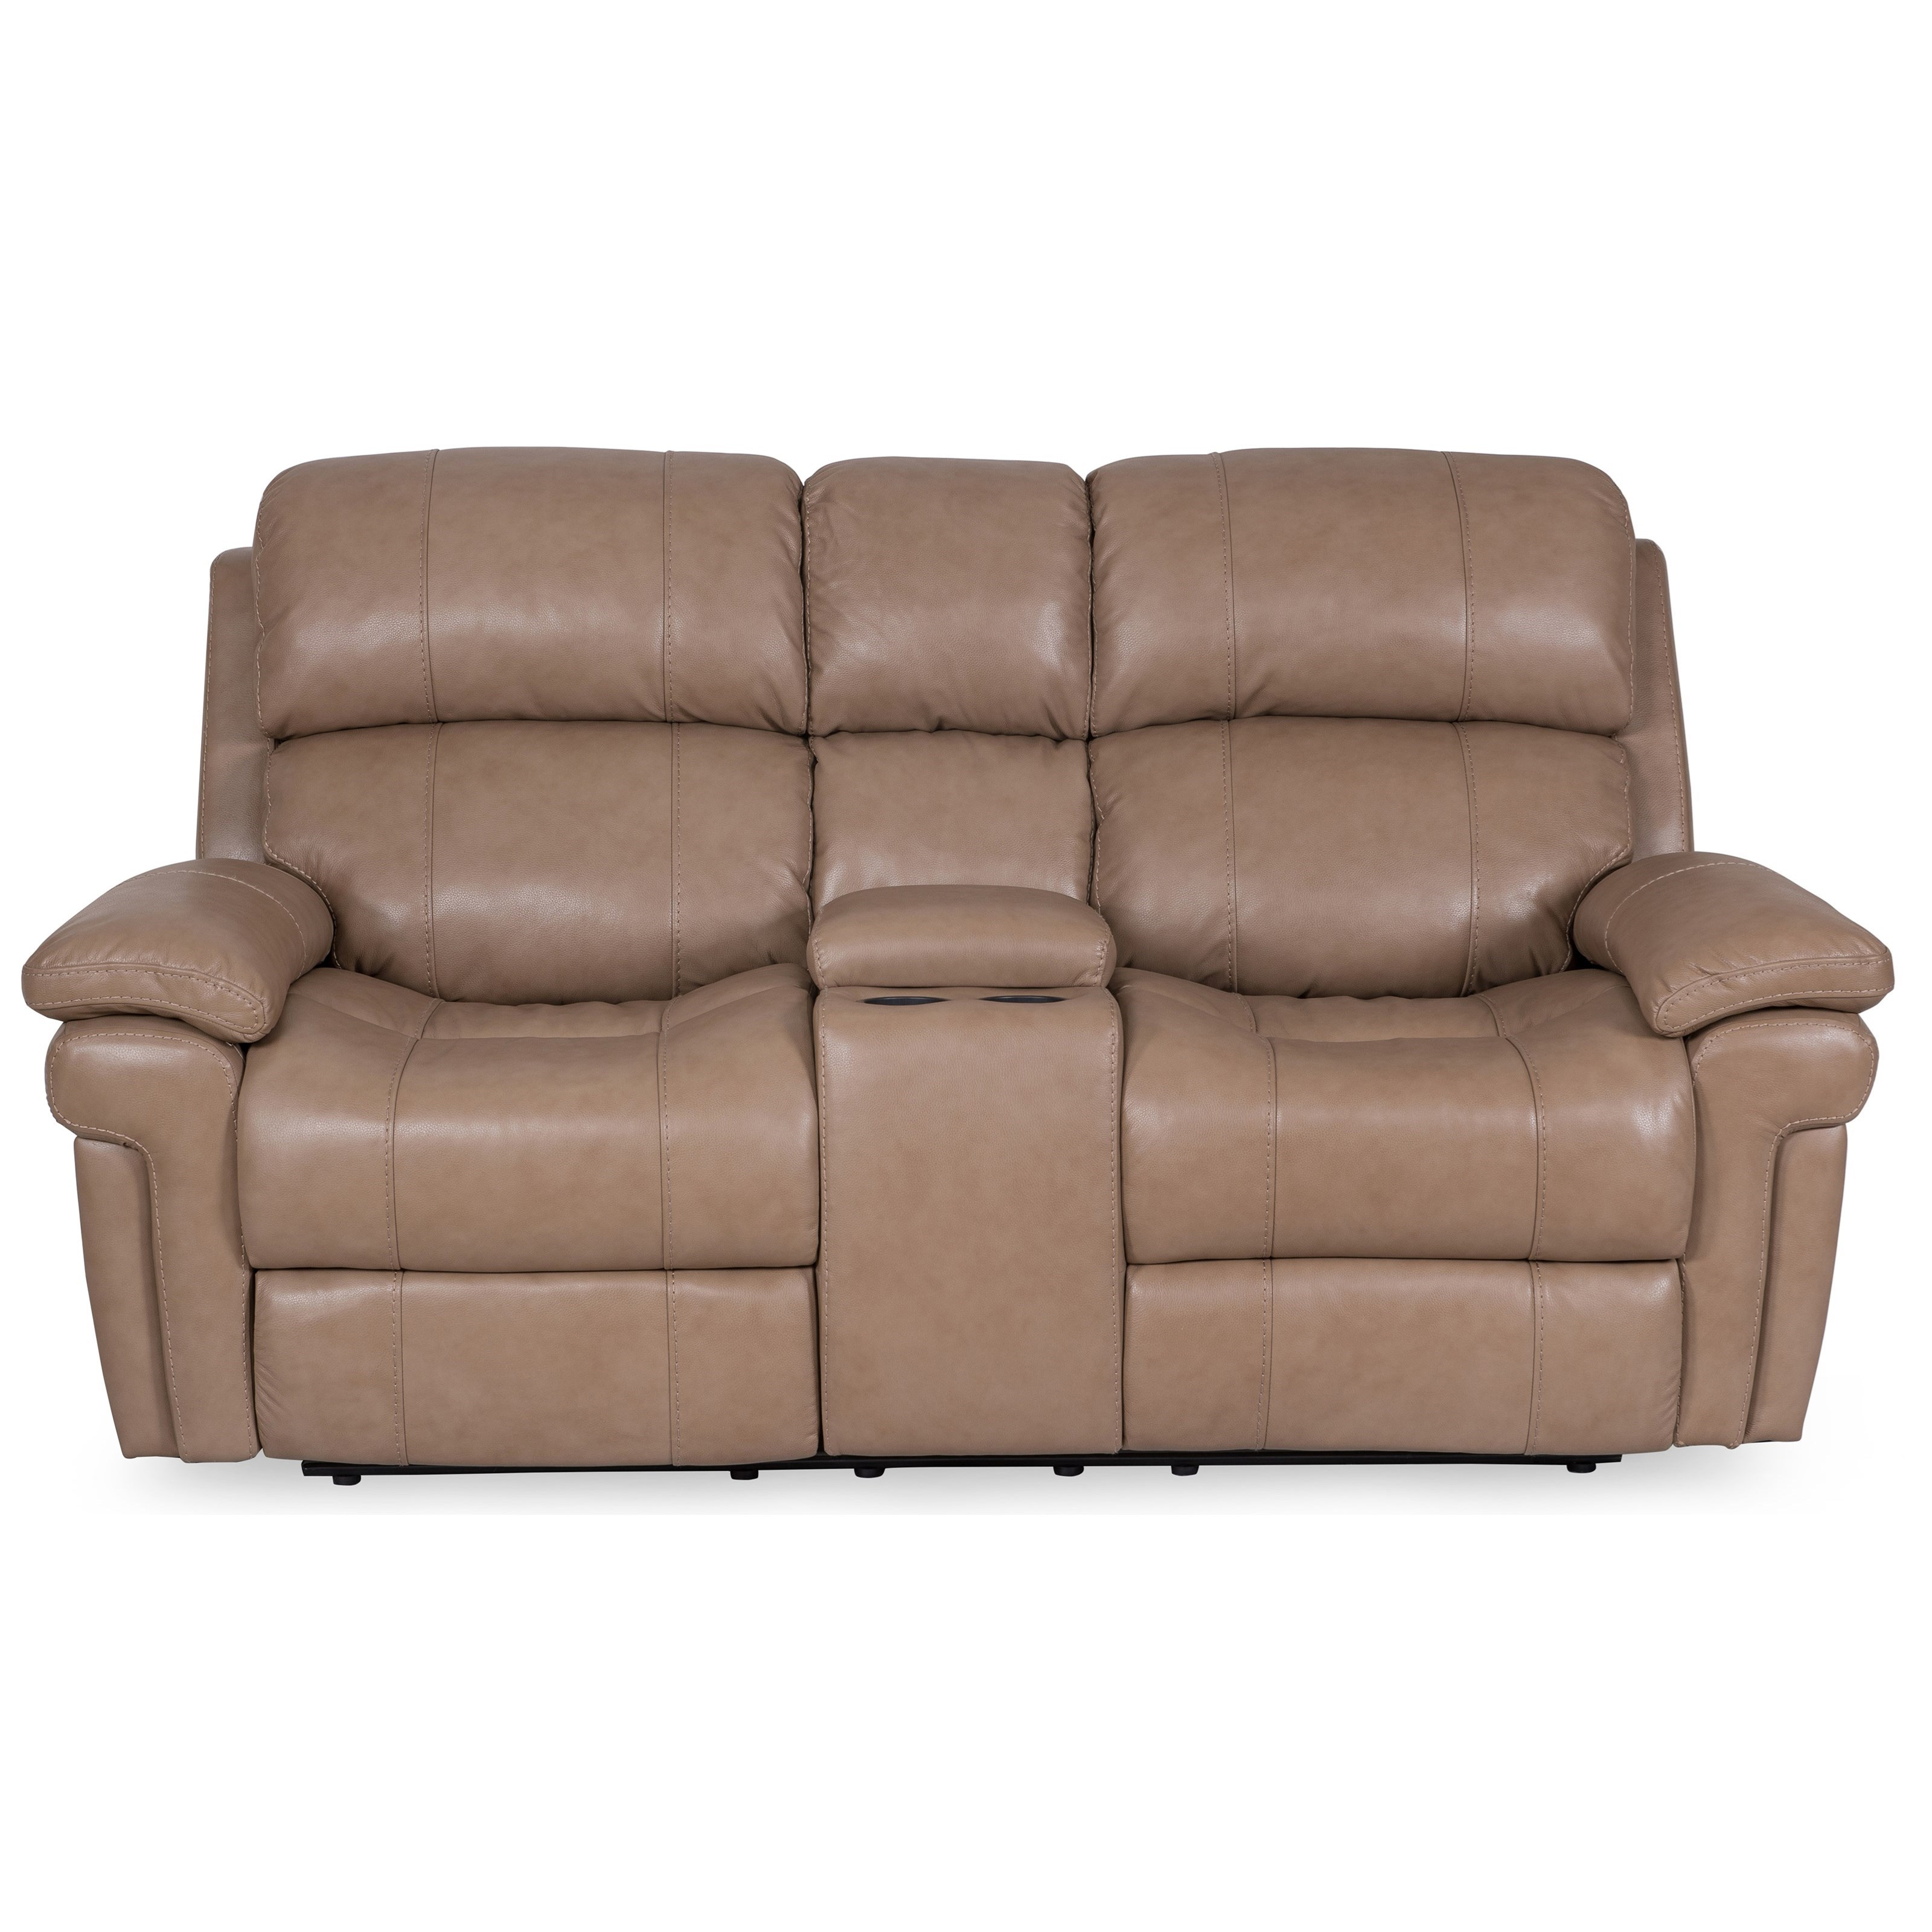 Sarah Randolph Designs 1394 Power Reclining Loveseat - Item Number: 1394-73PHR LaSalle Taupe